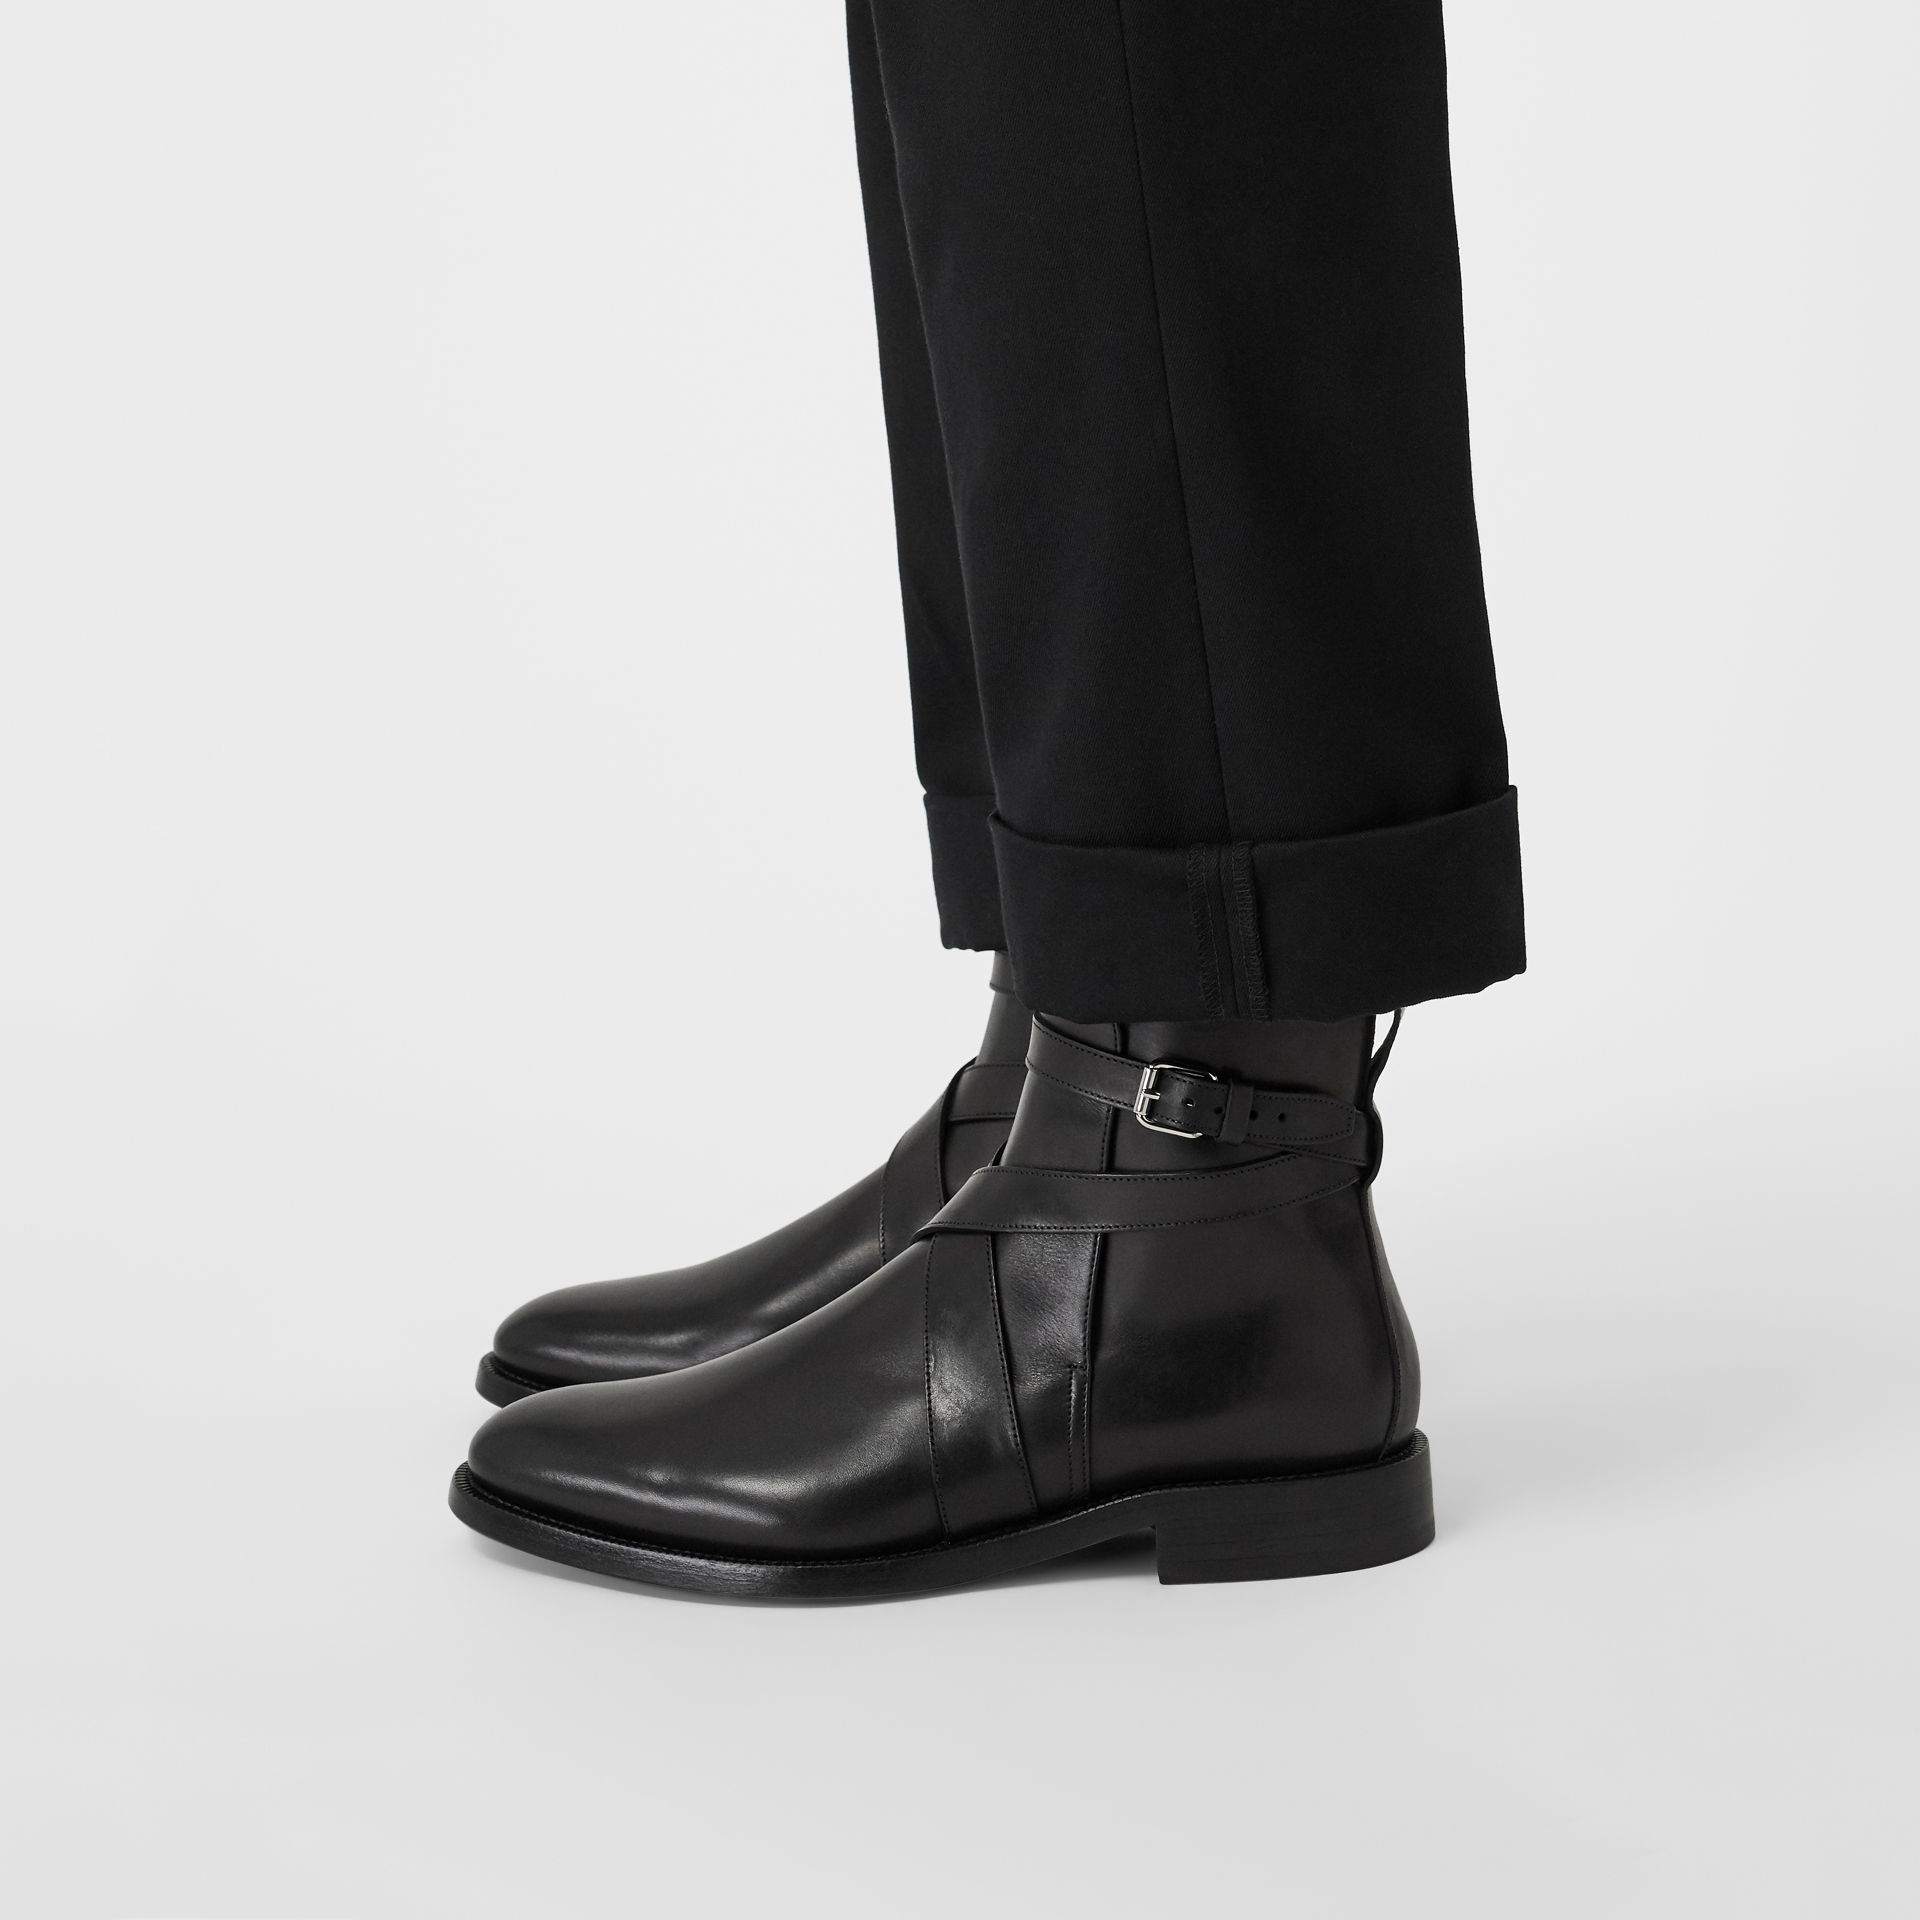 Bottines en cuir à sangle (Noir) - Homme | Burberry - photo de la galerie 2